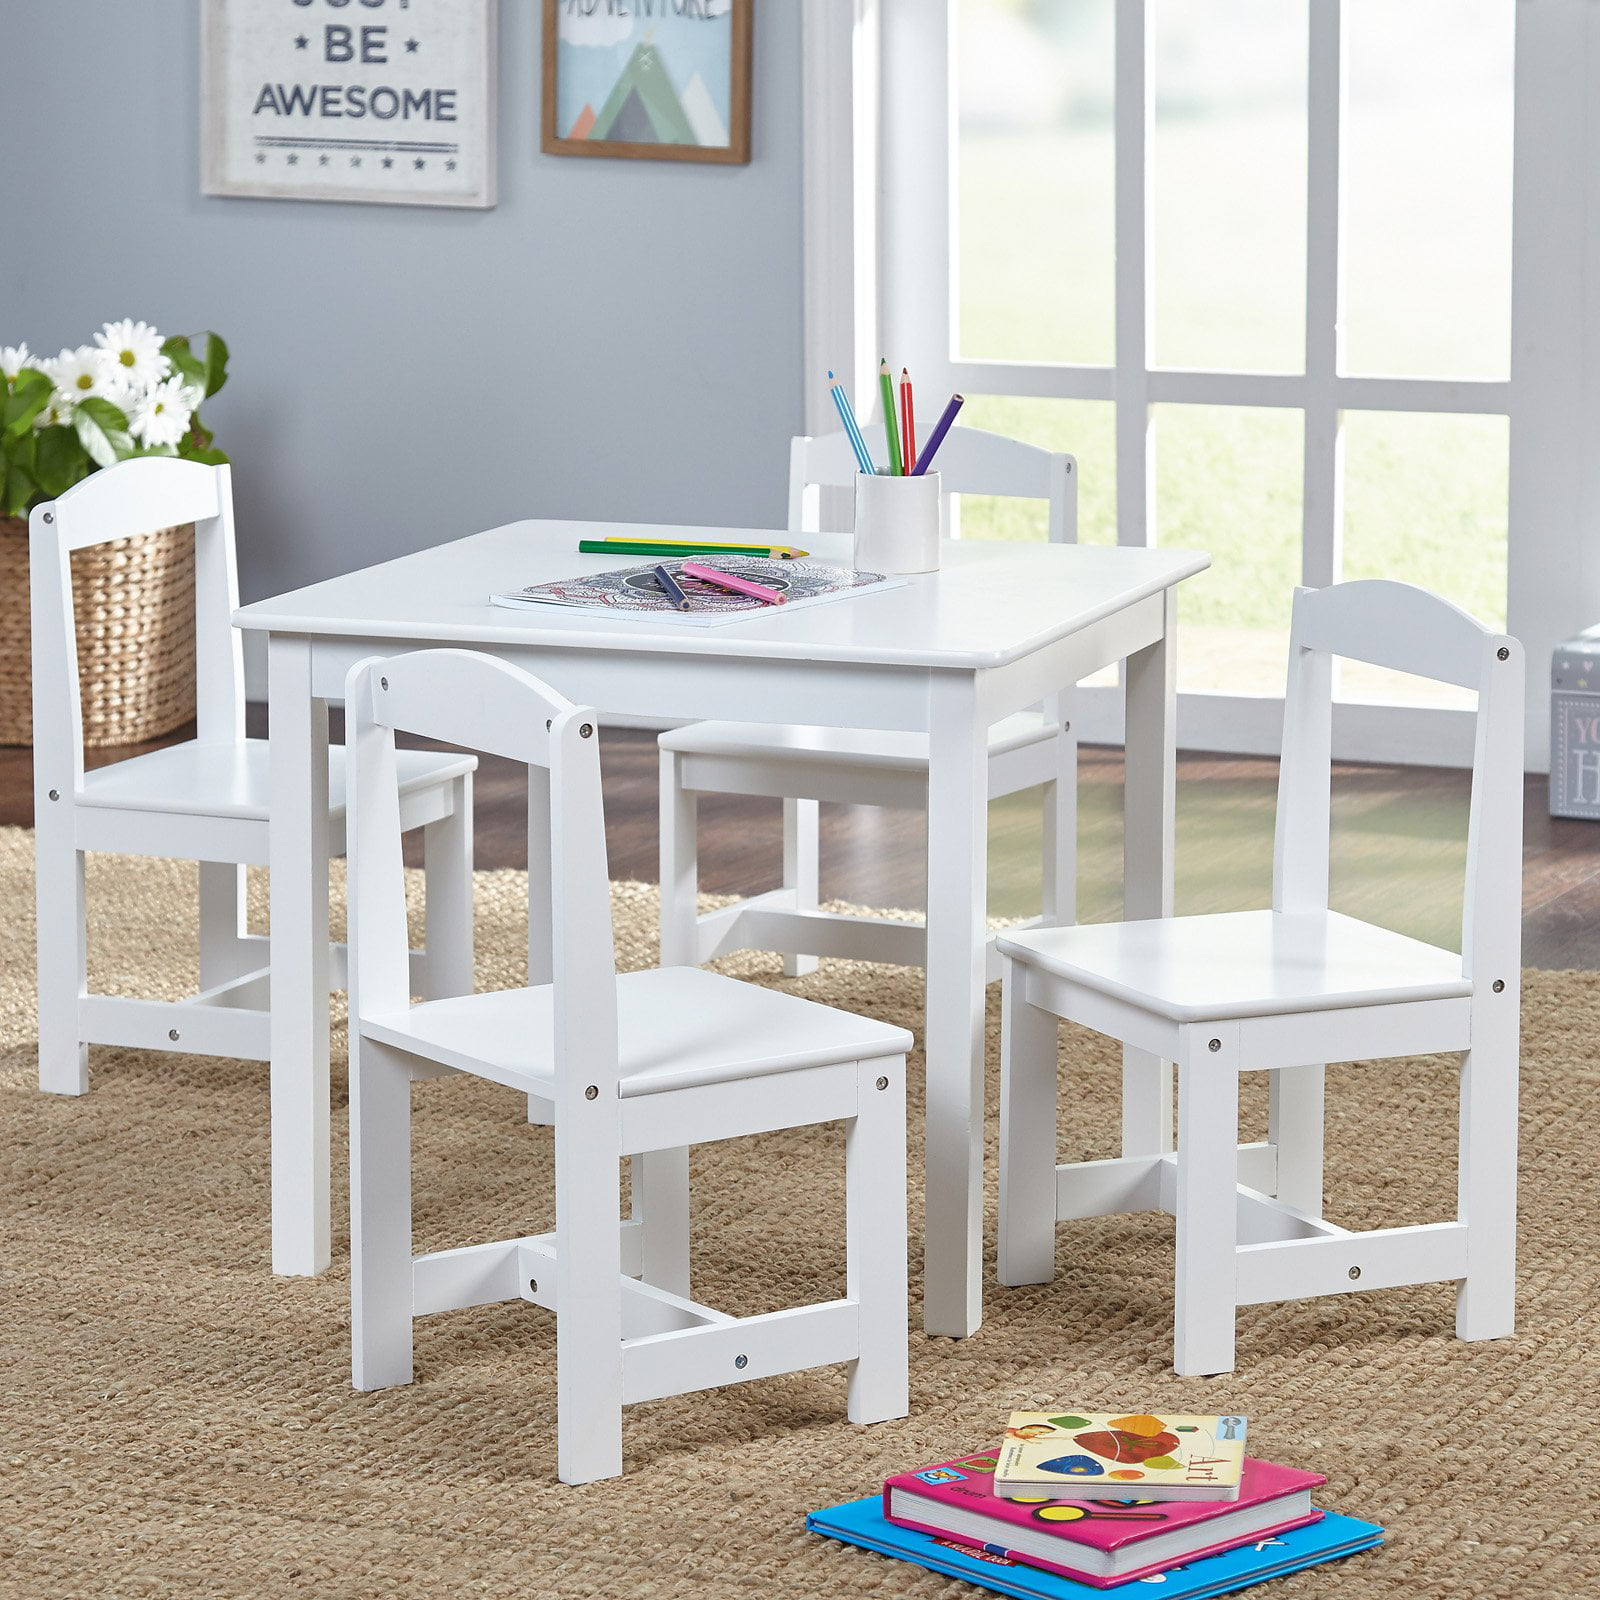 Tms Hayden Kids 5 Piece Table And Chairs Set Multiple